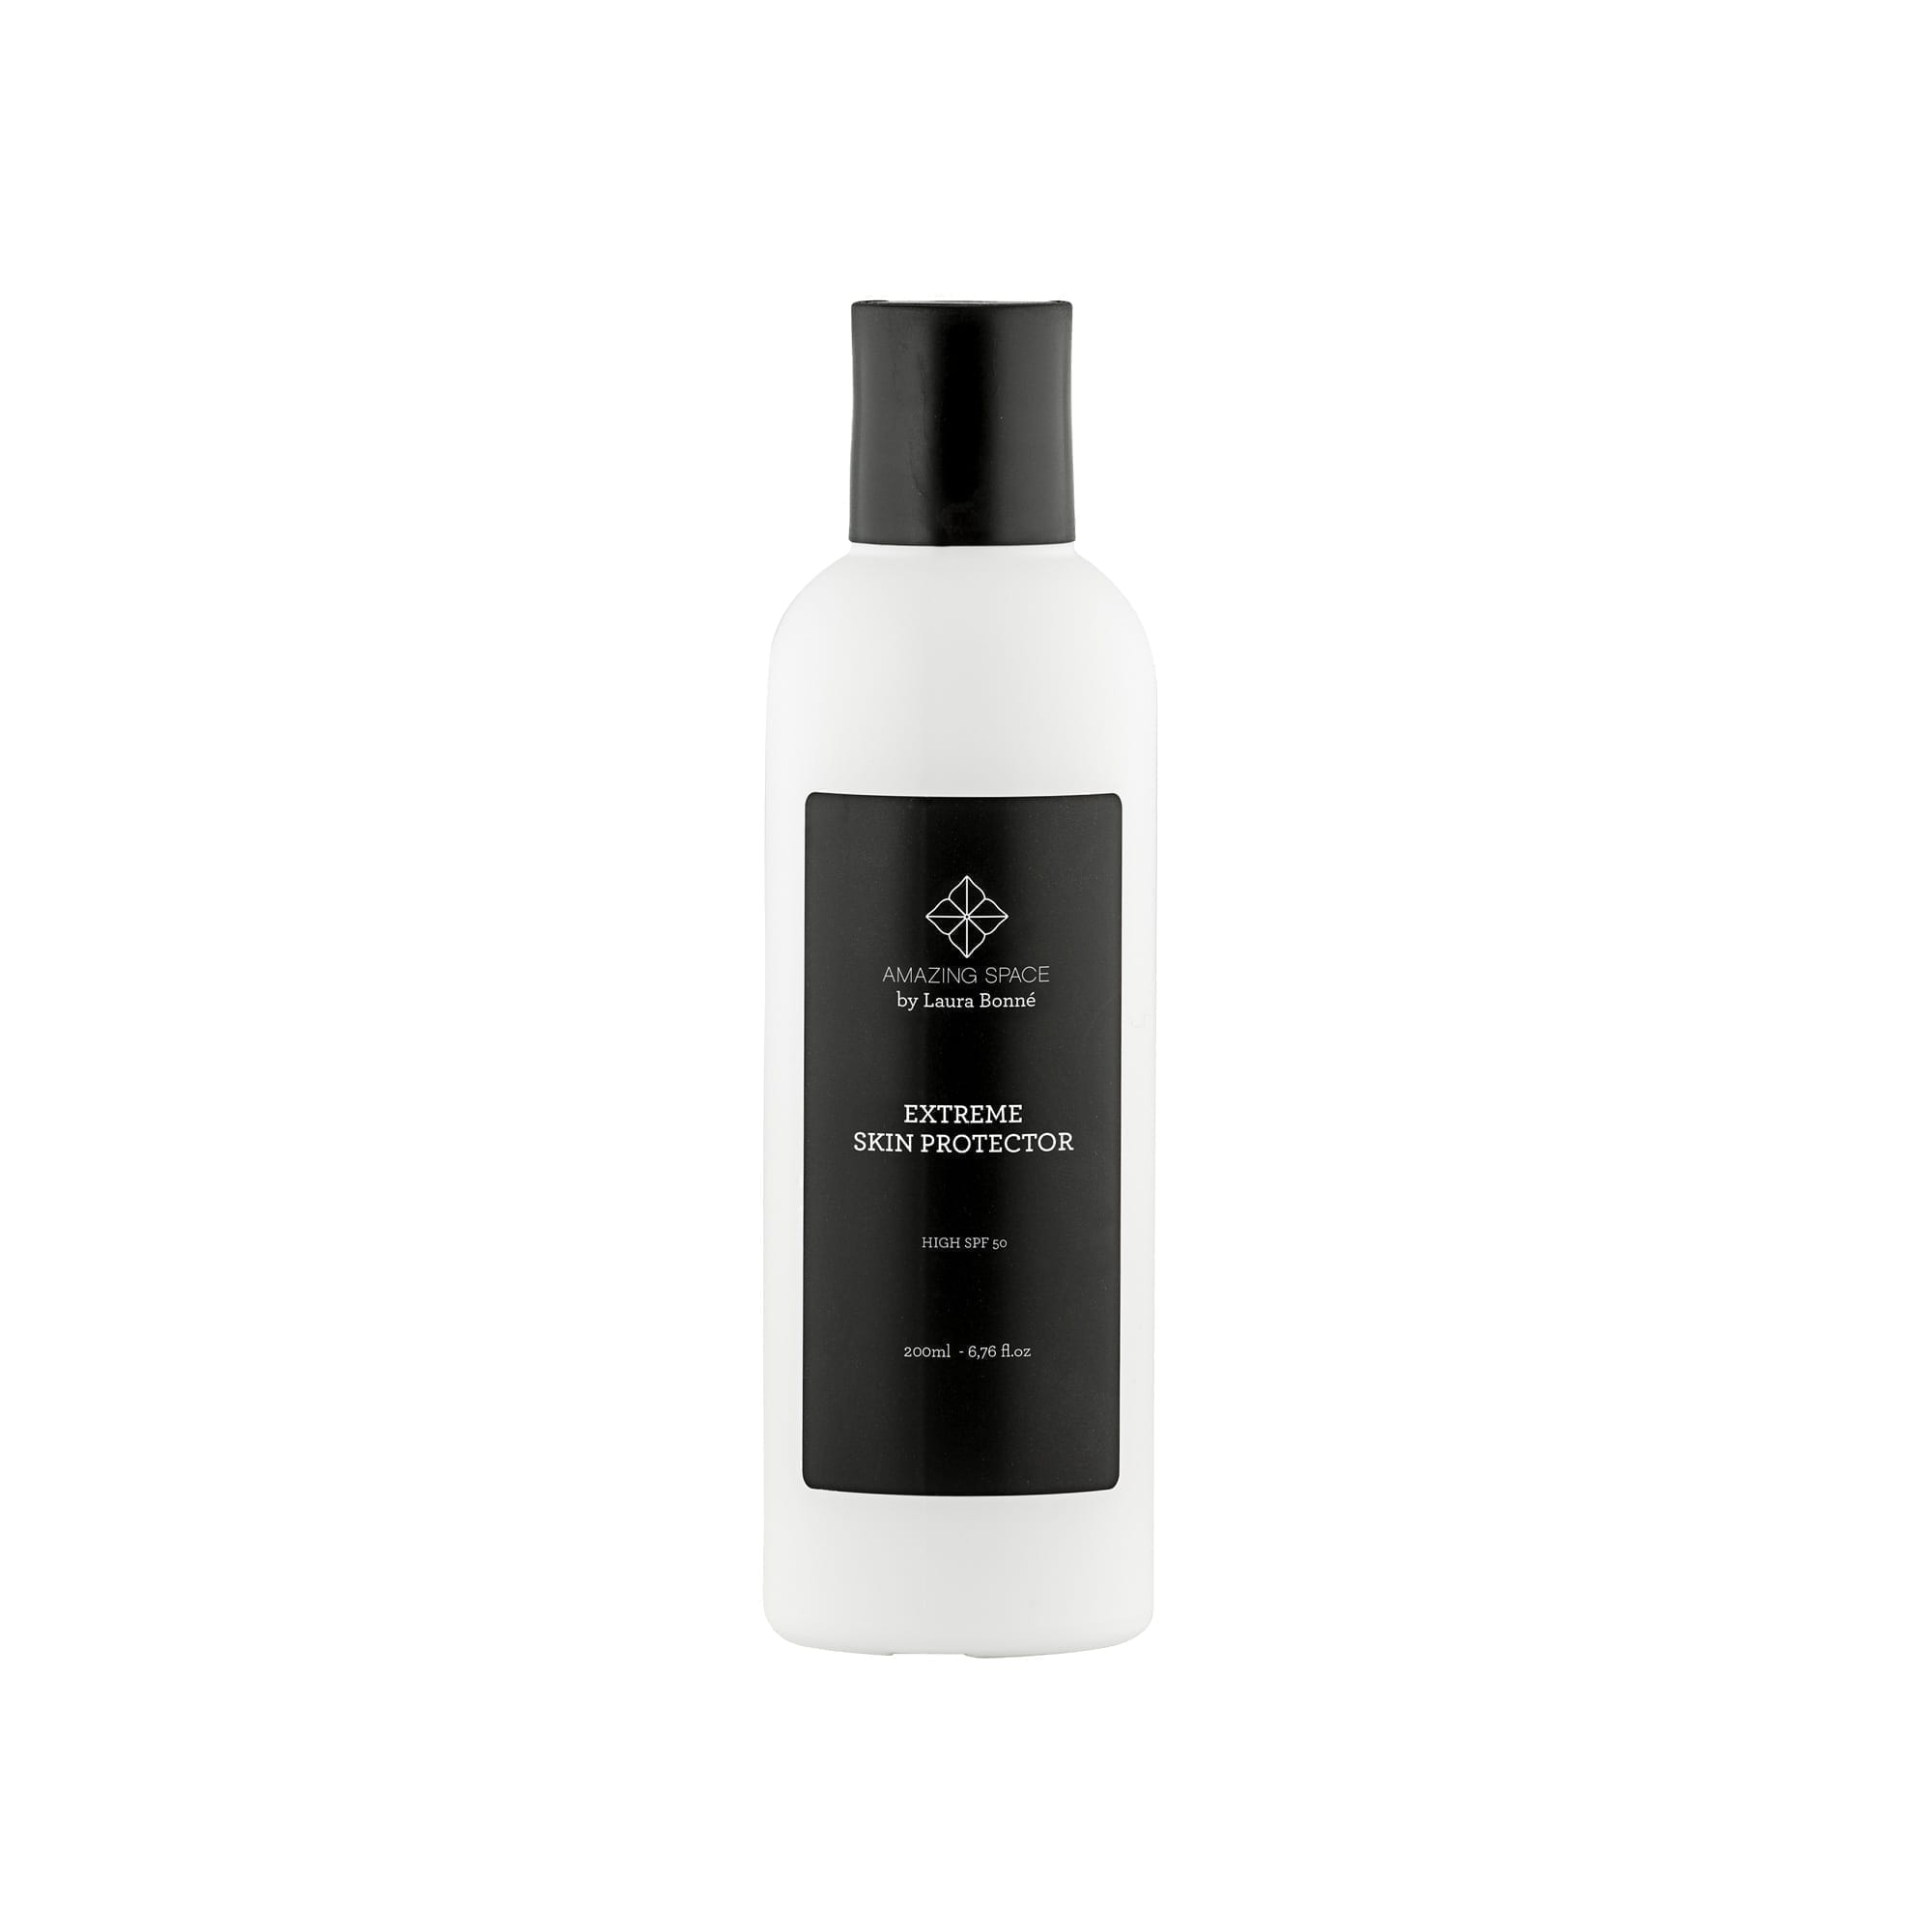 Extreme Skin Protector SPF 50 - Solcreme - Amazing Space